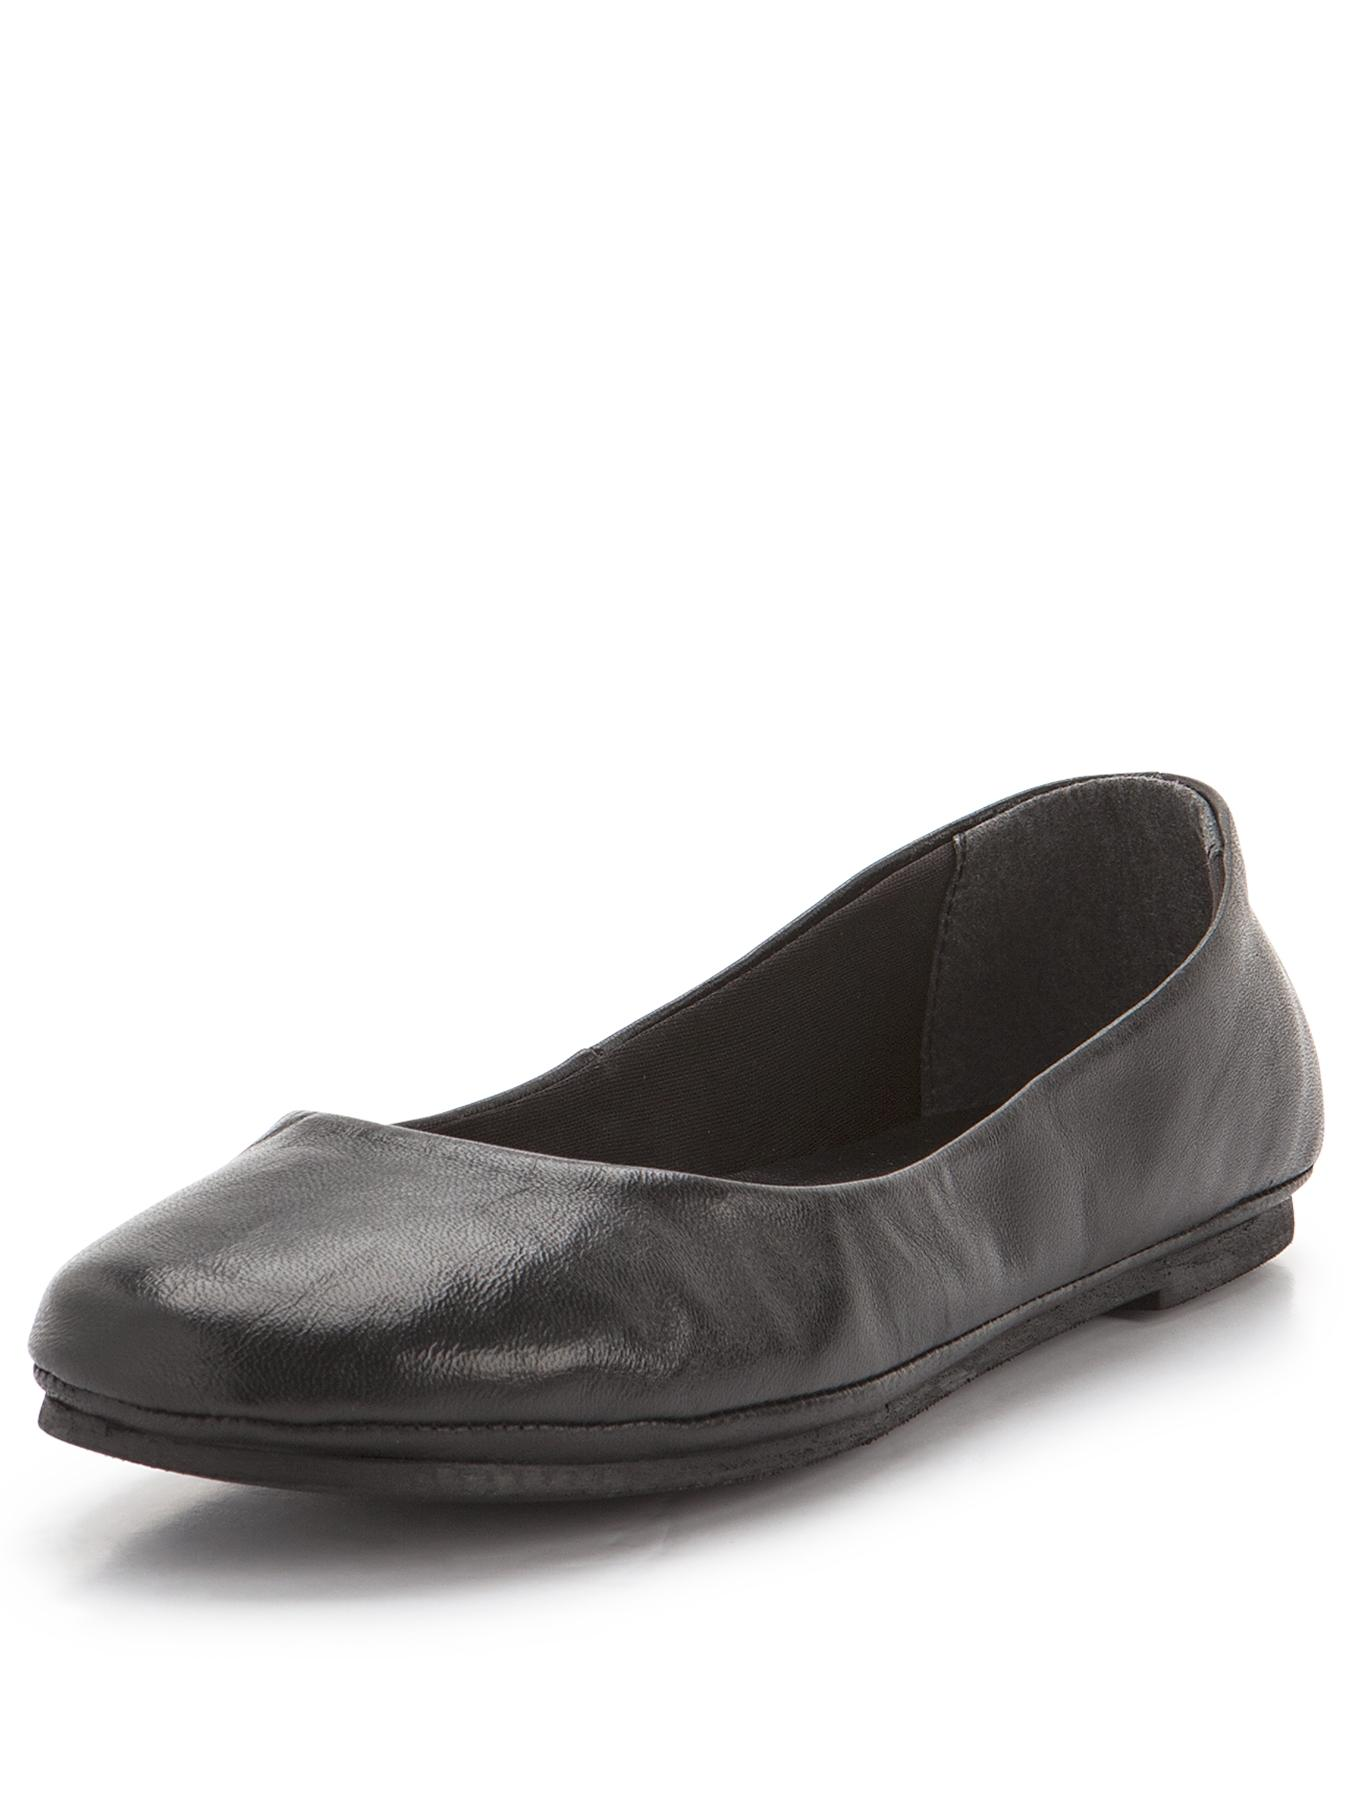 Shoe Box Perfect Leather Pumps - Black, Black